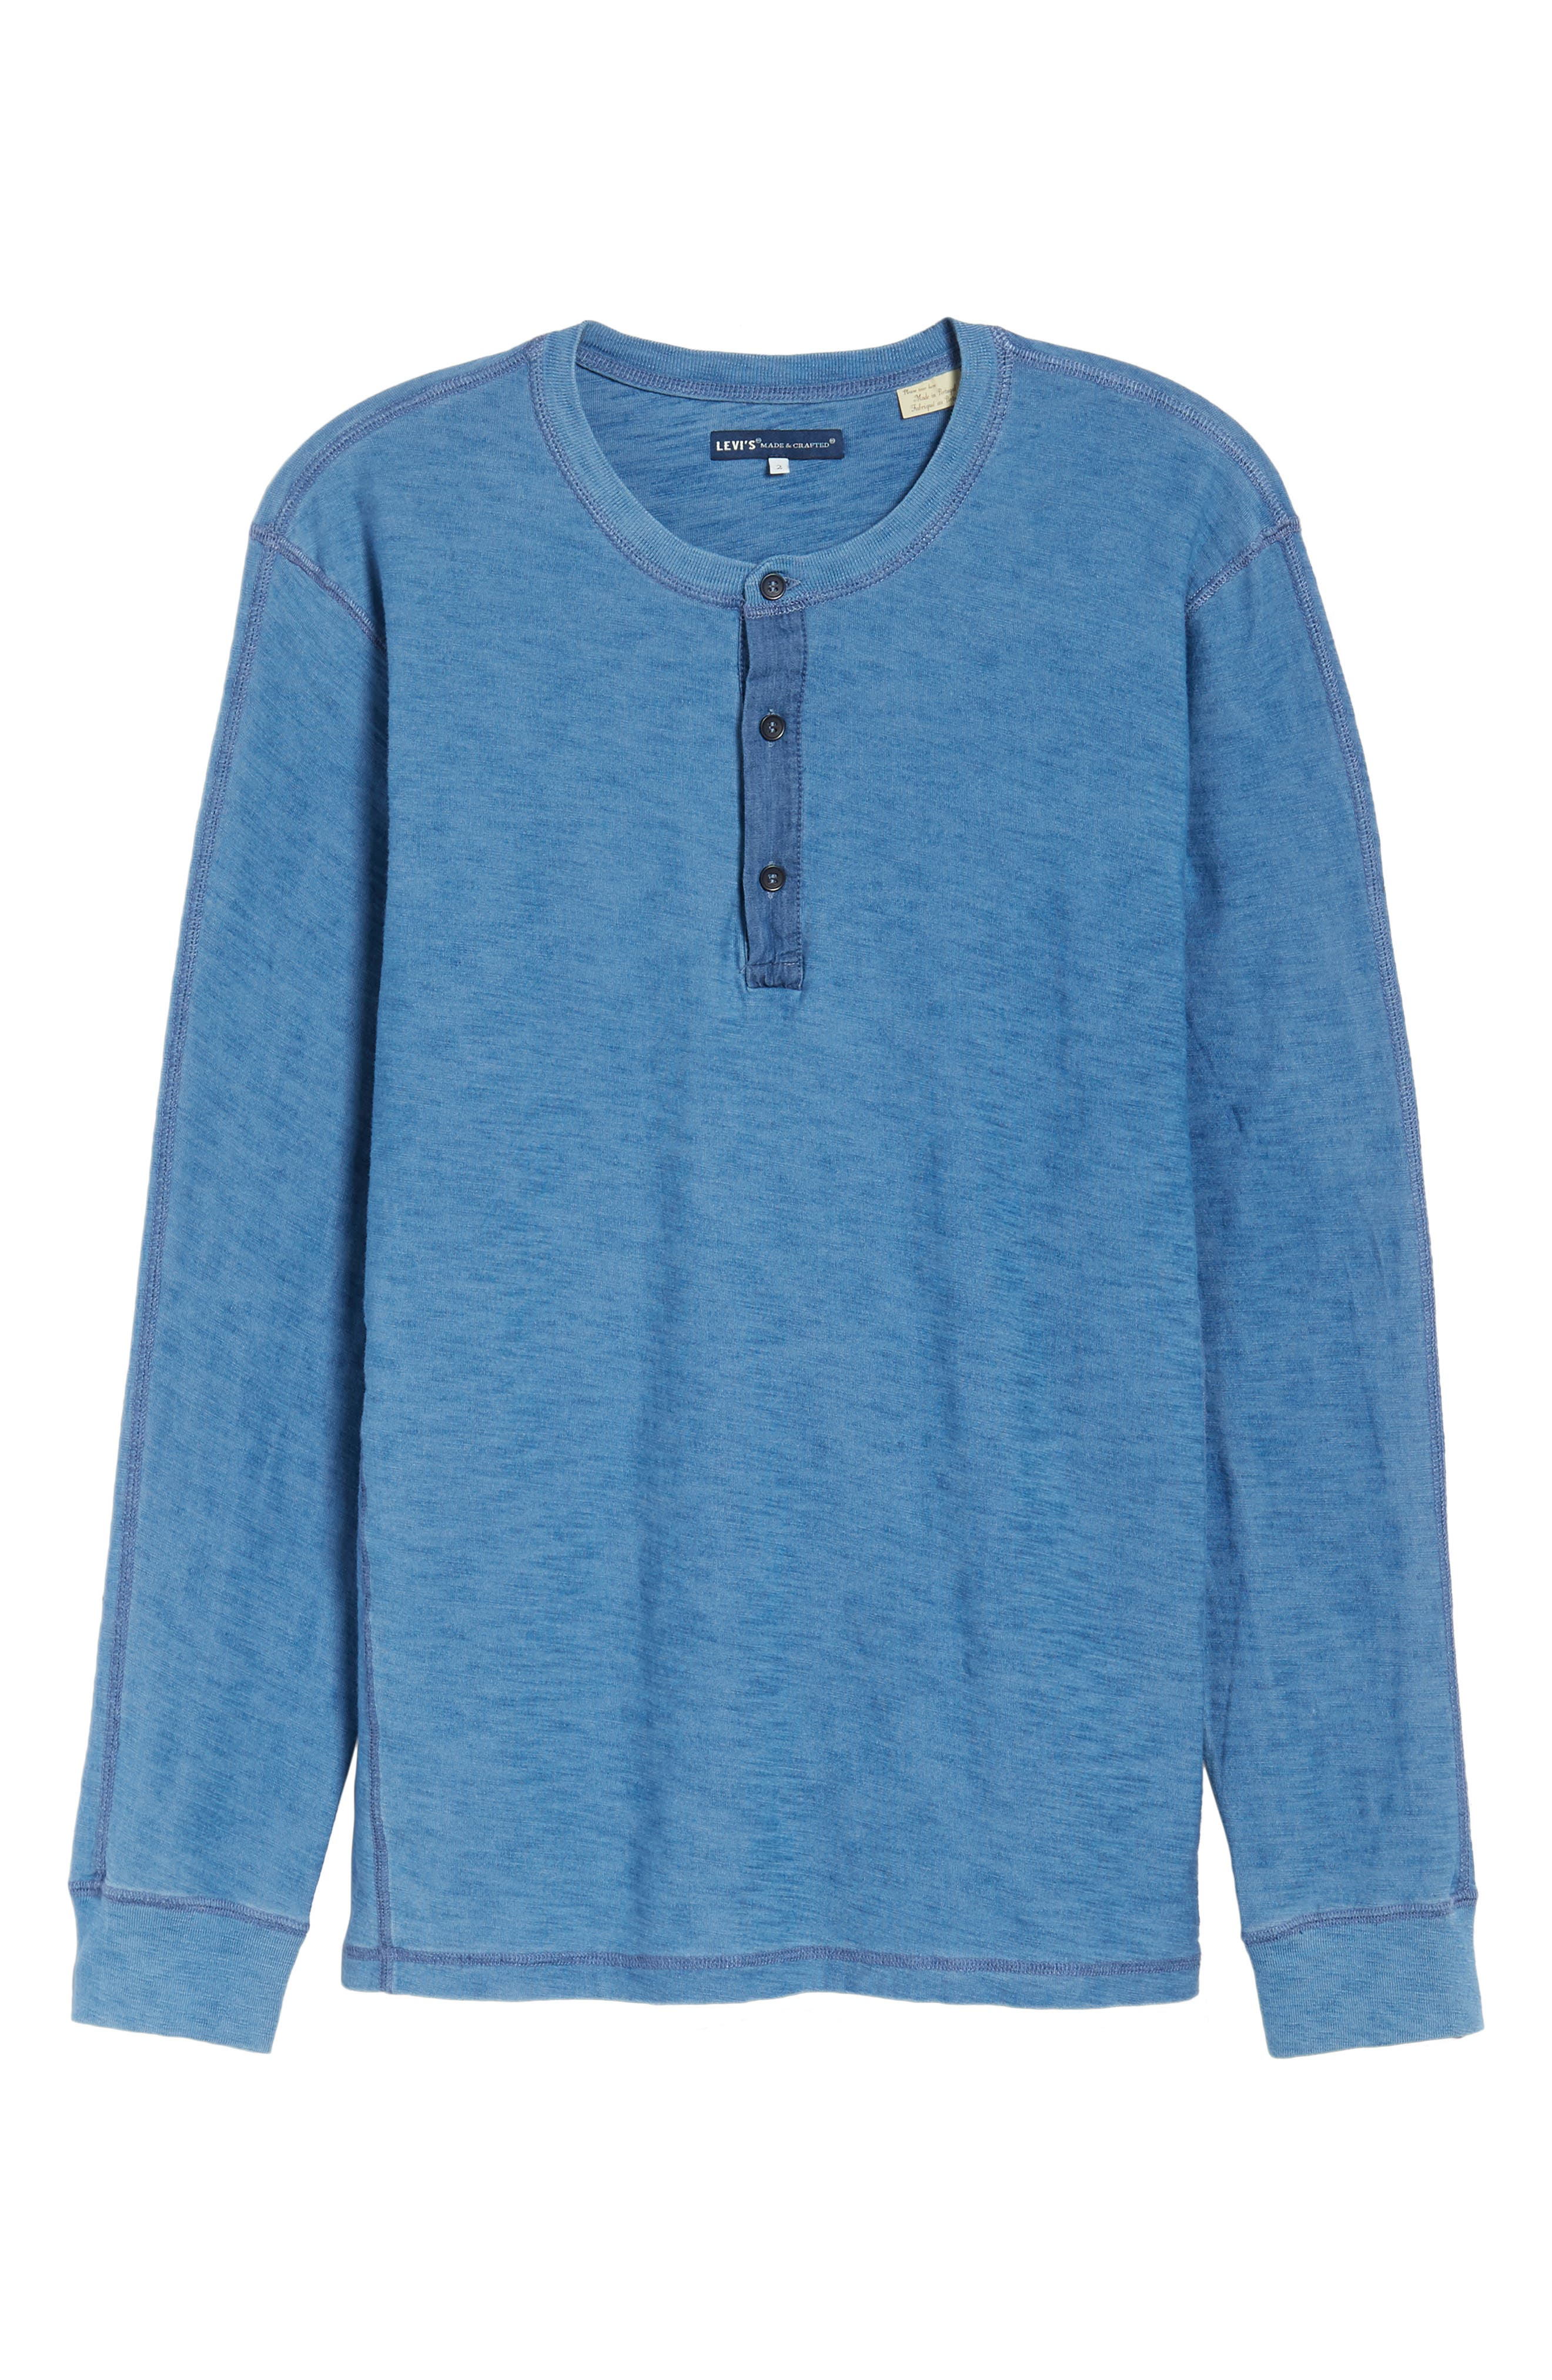 LEVI'S<SUP>®</SUP> MADE & CRAFTED<SUP>™</SUP>,                             Henley,                             Alternate thumbnail 6, color,                             420